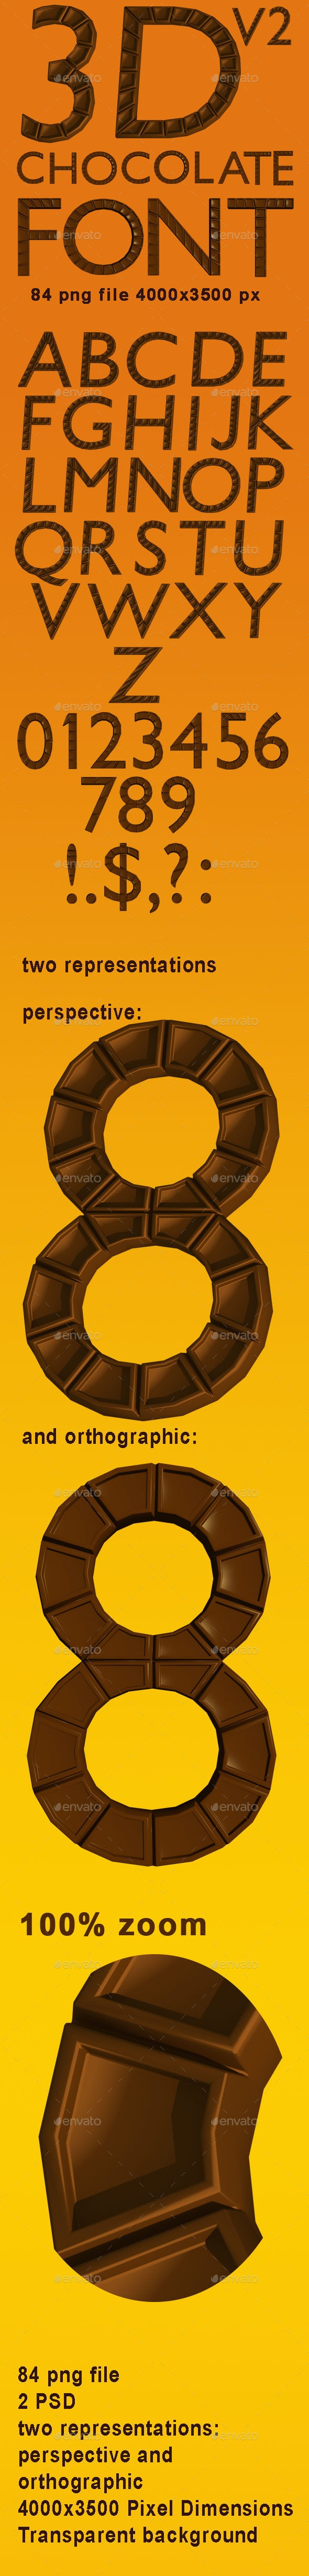 3D Chocolate Font v2 - Text 3D Renders